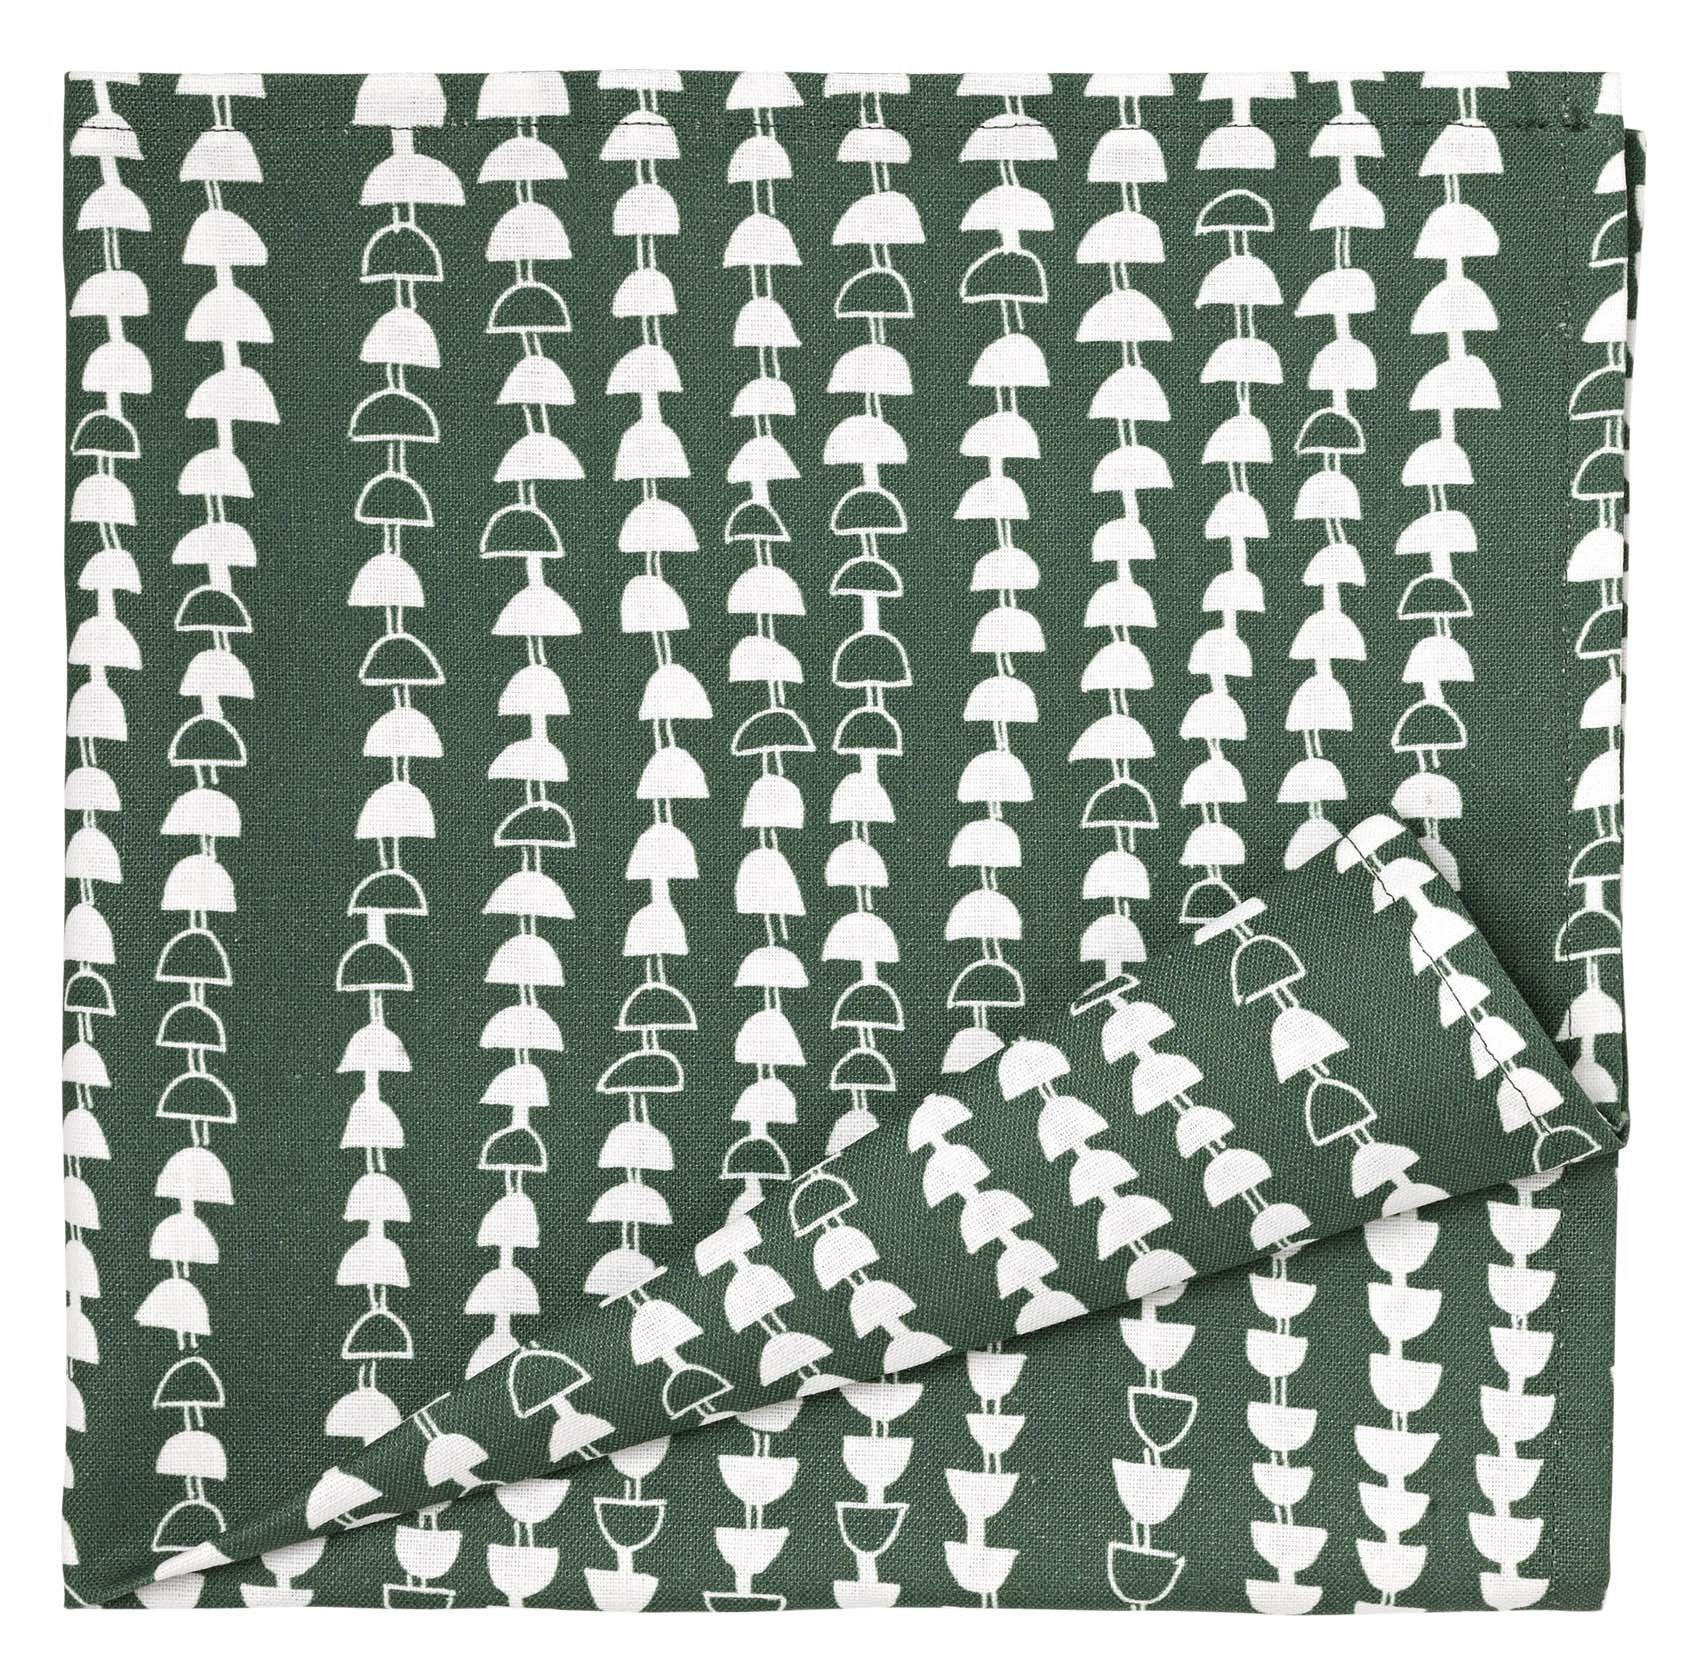 Hopi Patterned Cotton Linen Napkins in Dark Moss Green